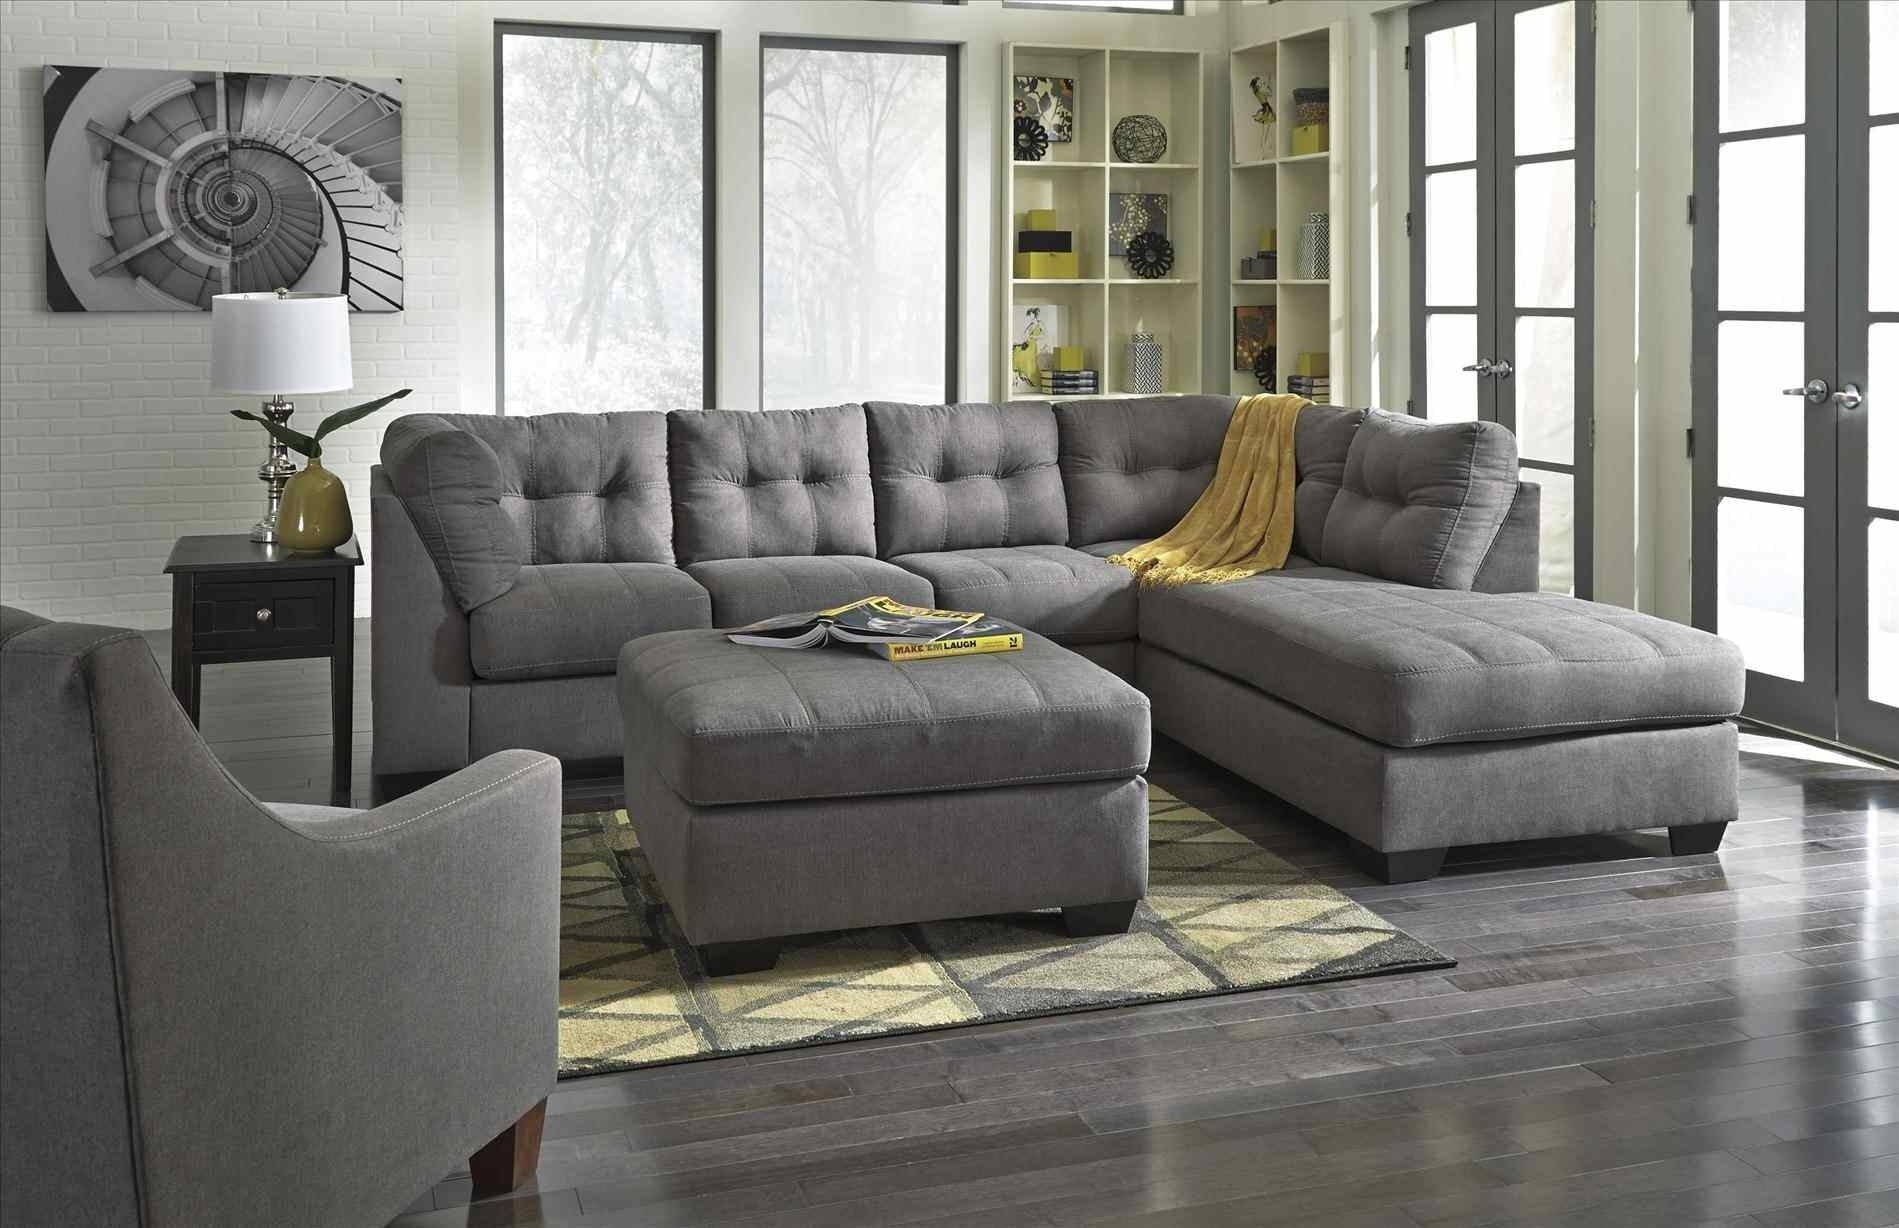 Couch : W Accent Pillows Sam Levitz Furniture Brindon Sofas Living Throughout Sam Levitz Sectional Sofas (View 7 of 10)